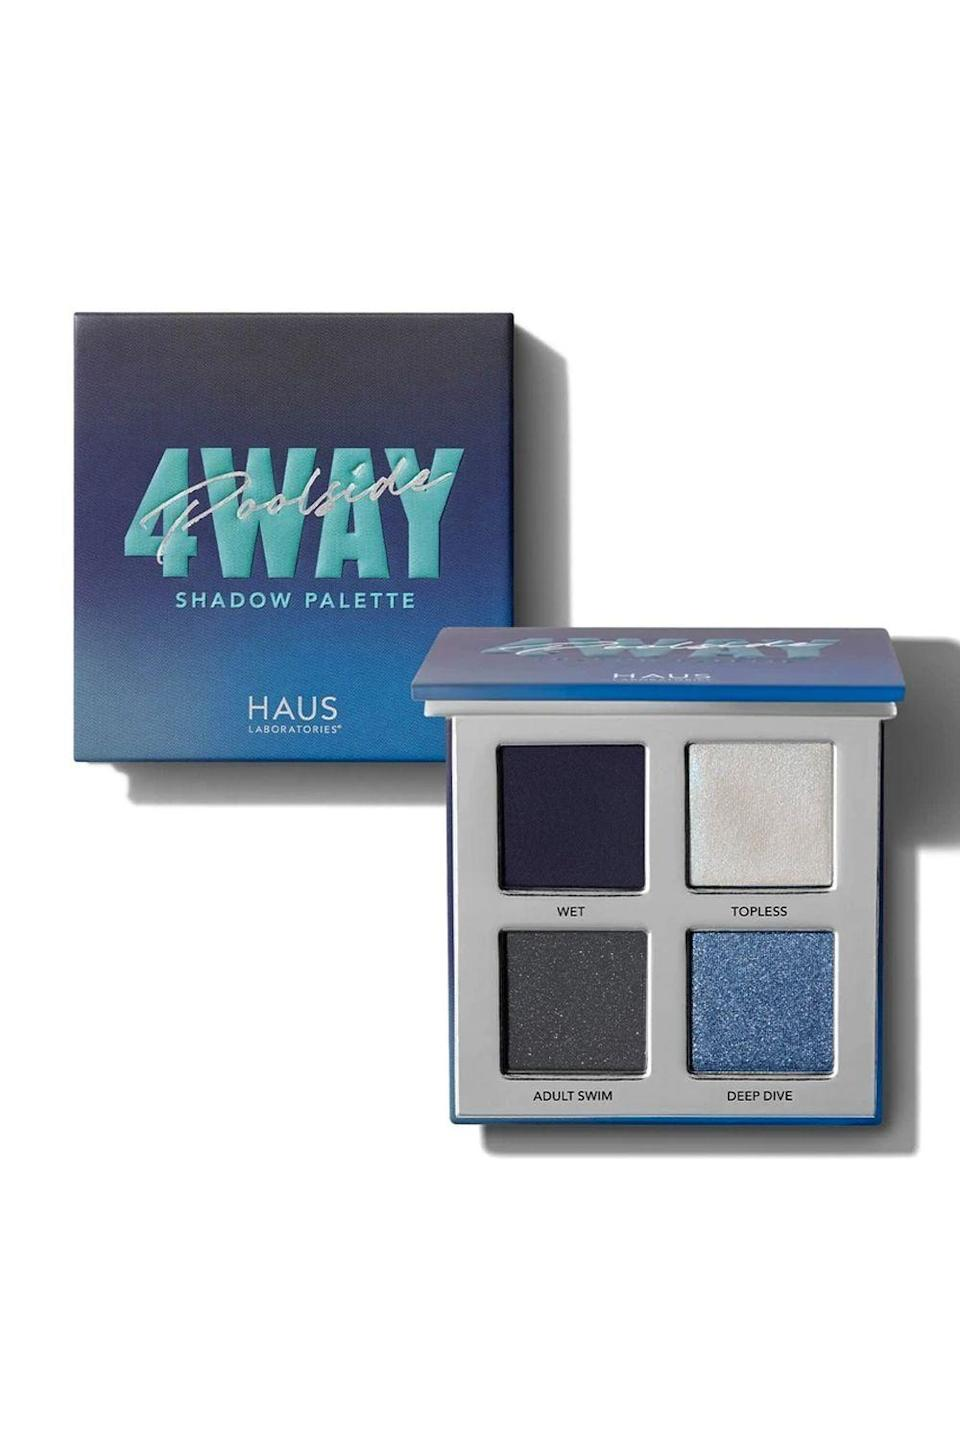 "<p><strong>HAUS LABORATORIES</strong></p><p>hauslabs.com</p><p><strong>$24.00</strong></p><p><a href=""https://www.hauslabs.com/products/four-way-shadow-palette?variant=33470854135896"" rel=""nofollow noopener"" target=""_blank"" data-ylk=""slk:Shop Now"" class=""link rapid-noclick-resp"">Shop Now</a></p><p>No matter what mood you're in, this <a href=""https://www.cosmopolitan.com/style-beauty/beauty/g13108425/eyeshadow-palette-sets/"" rel=""nofollow noopener"" target=""_blank"" data-ylk=""slk:eyeshadow palette"" class=""link rapid-noclick-resp"">eyeshadow palette</a> will match your energy. Each pigmented quad has a combo of matte, metallic, and shimmer shadows that <strong>can be turned all the way up or played down for a more subtle look.</strong><br></p><p><strong>✨ PROMOTION:</strong> 20% off (exclusions apply) with promo code <strong>HAULIDAY</strong></p>"